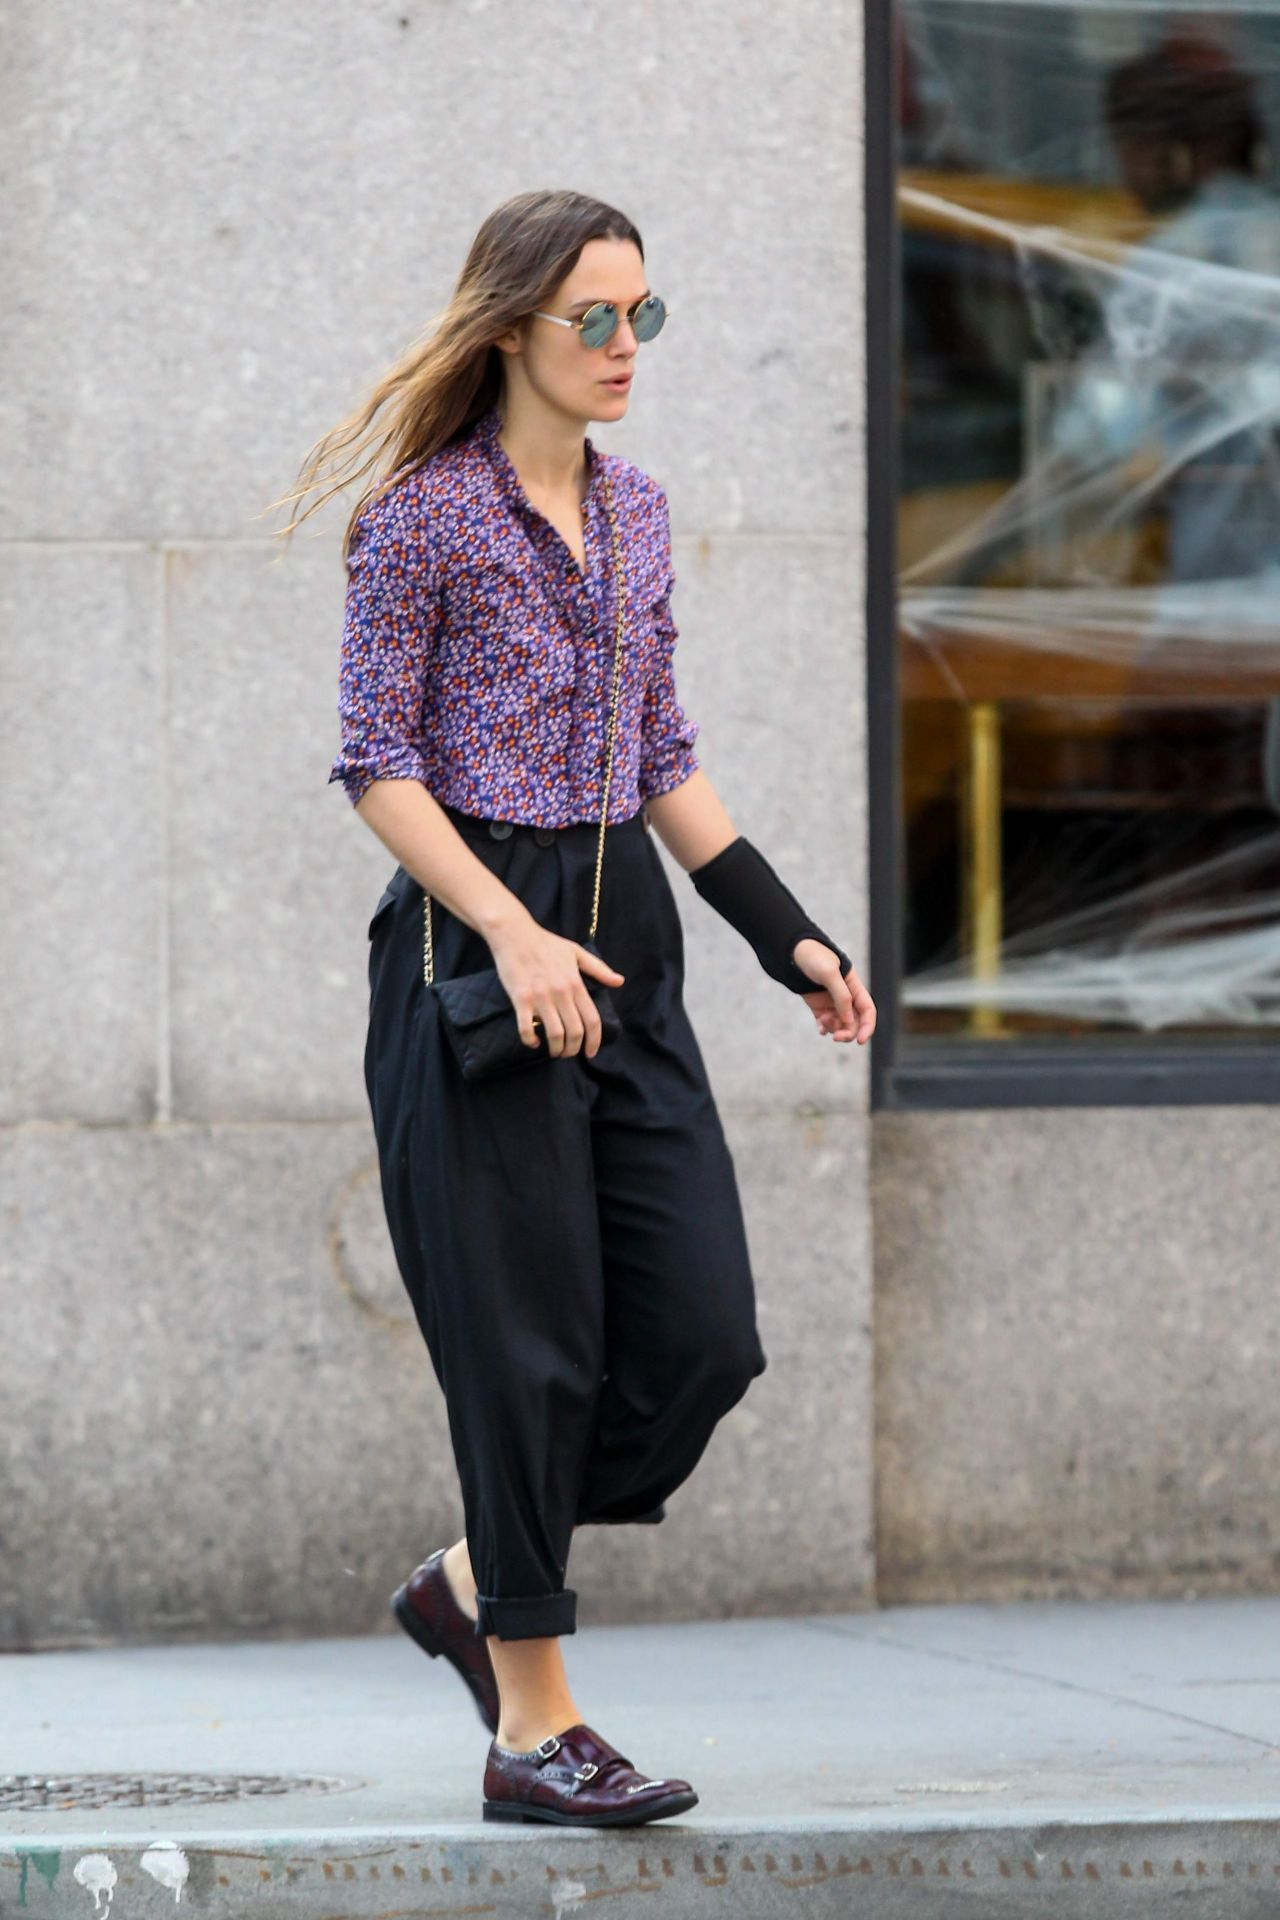 Keira Knightley Street Style Out In New York City October